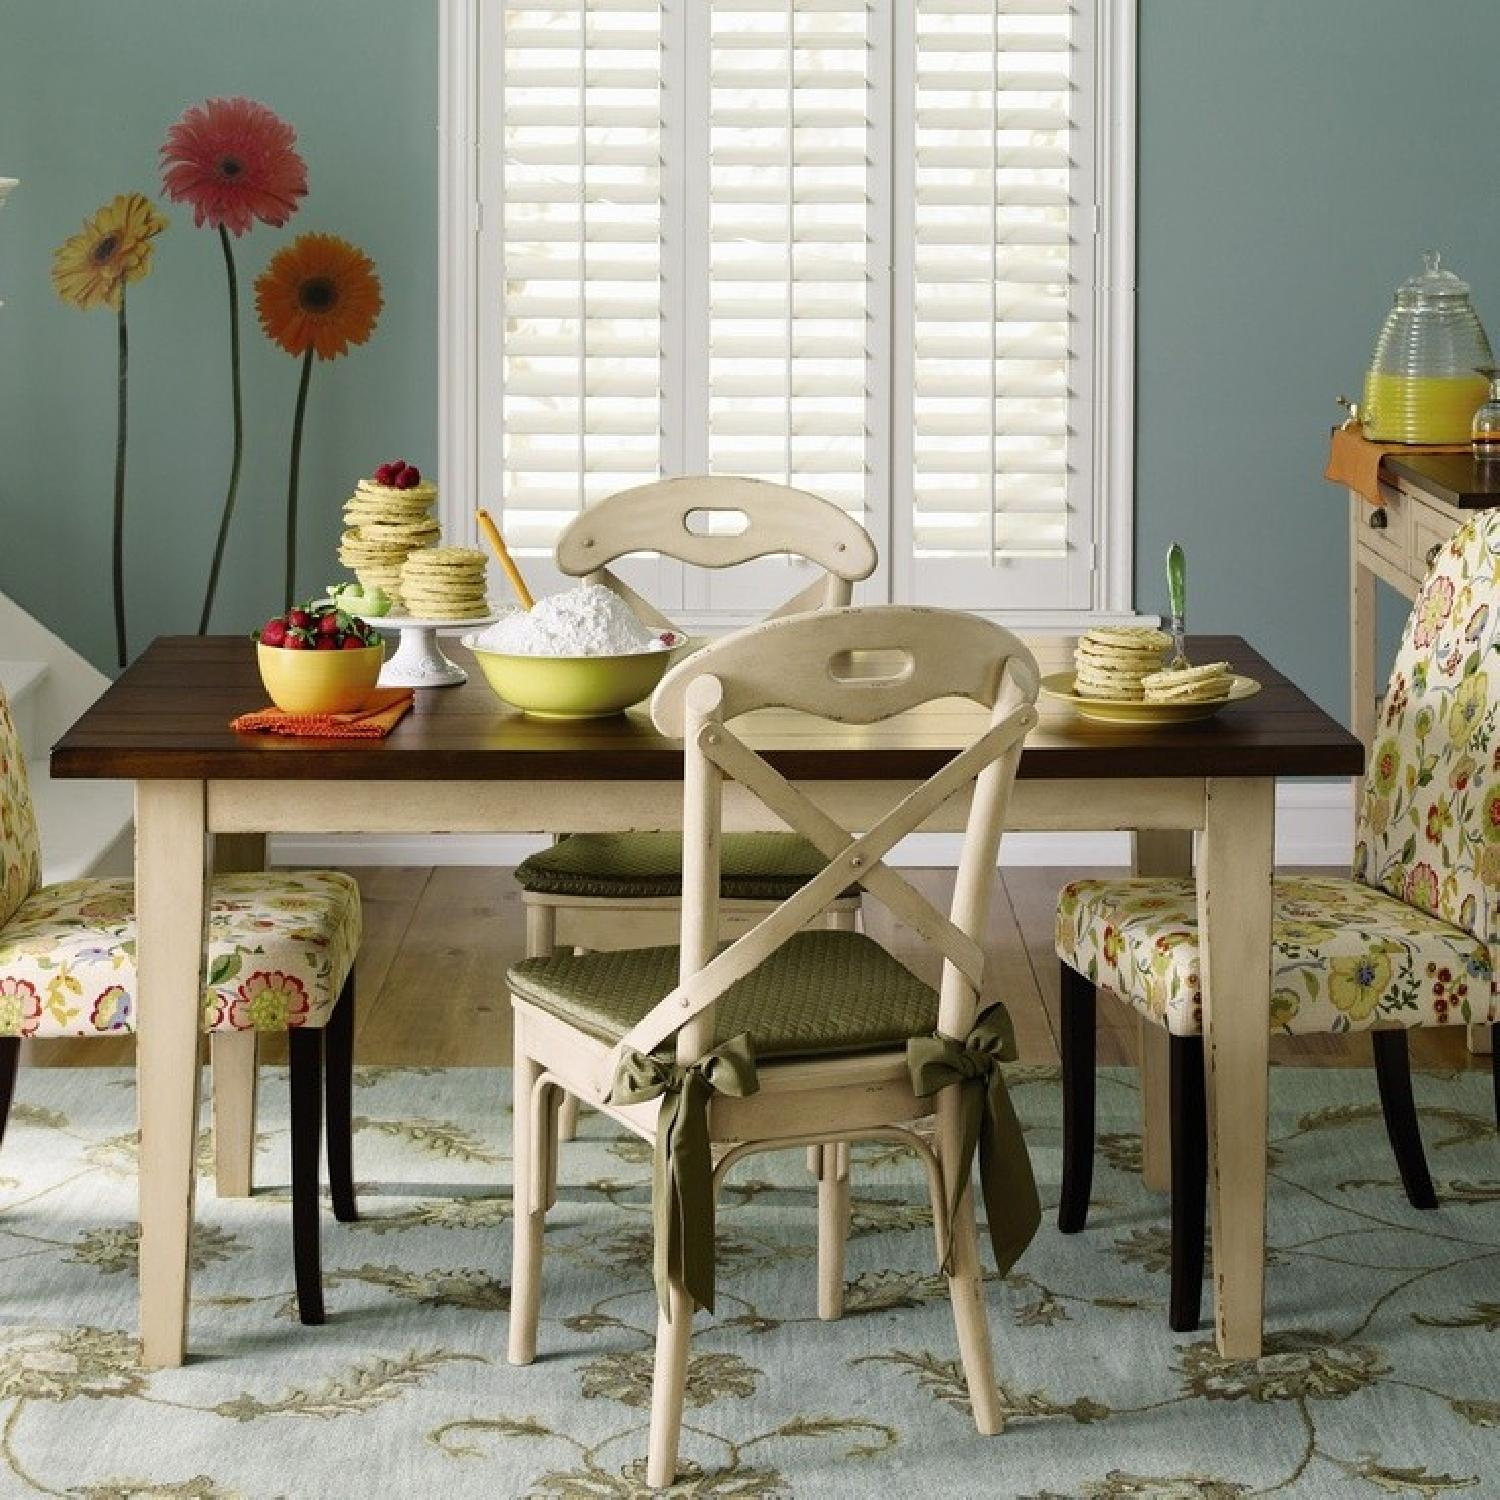 Pier 1 Dining Table in Antique Ivory - image-3